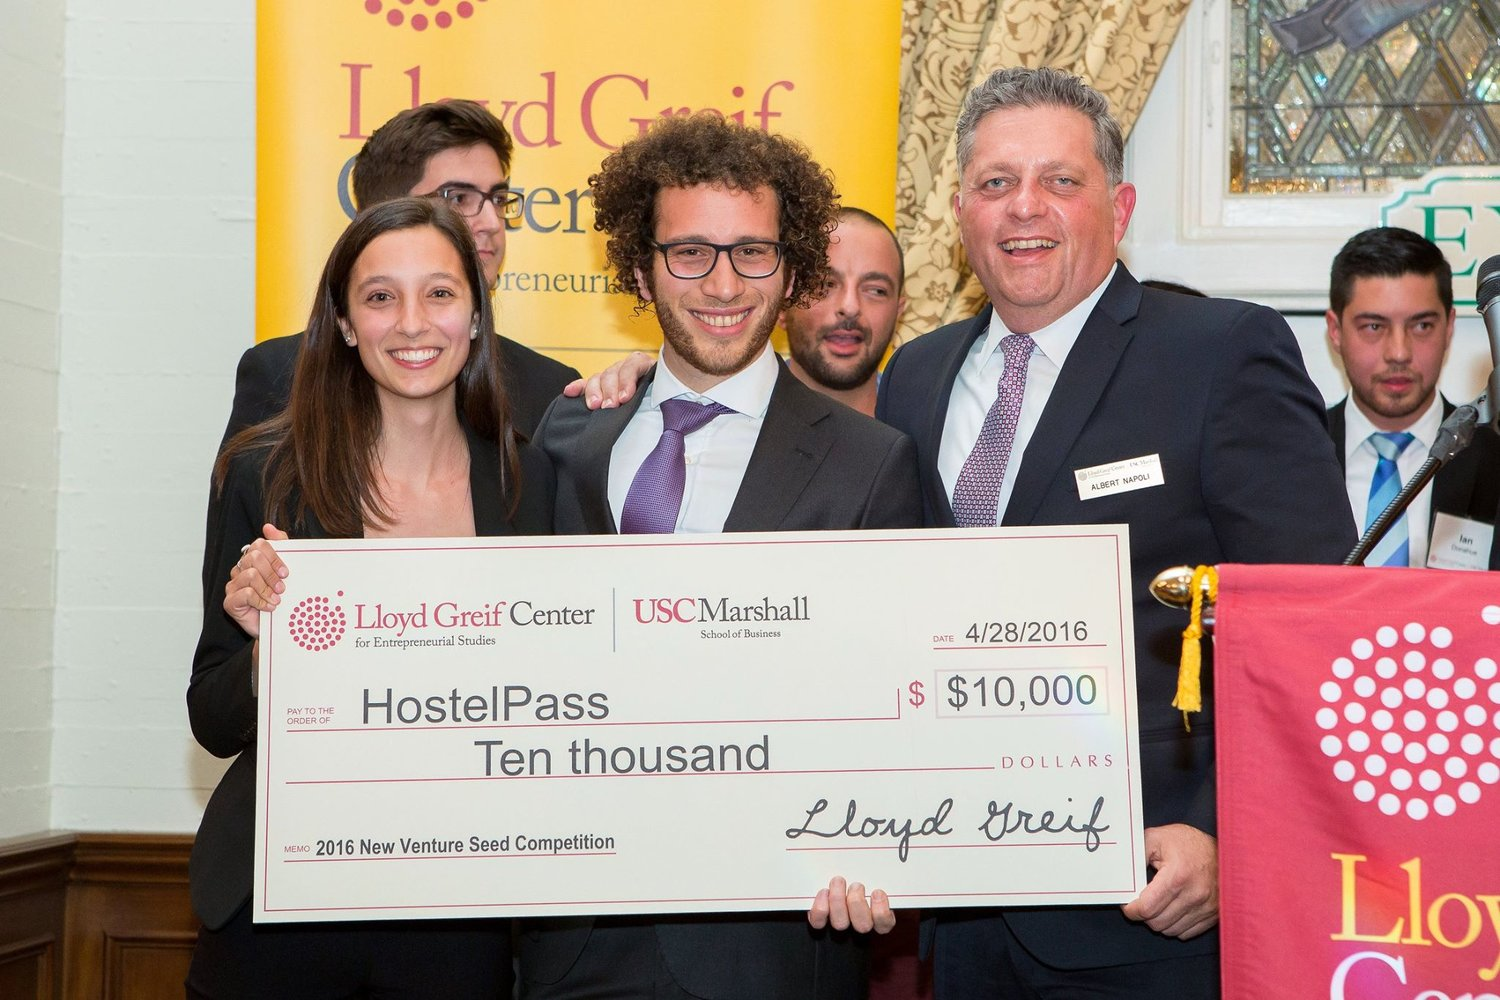 Meir and me winning $10,000 in USC's New Venture Seed Competition for HostelPass. April 2016.